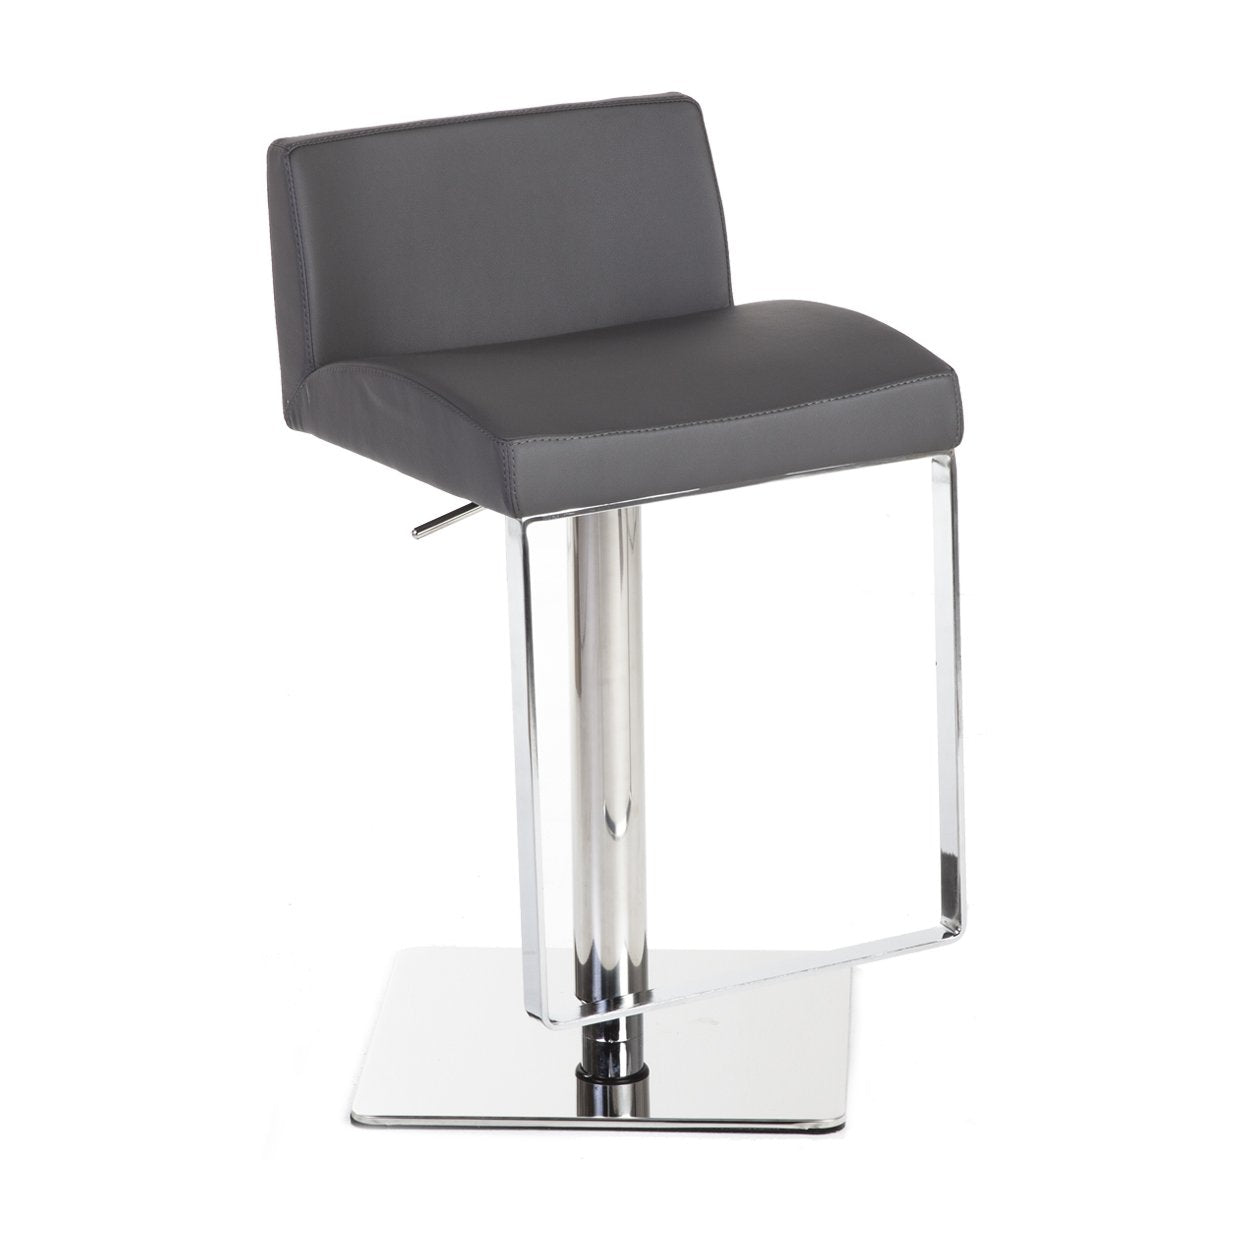 [FJC1373GREY] Cairistiona Stool SALE